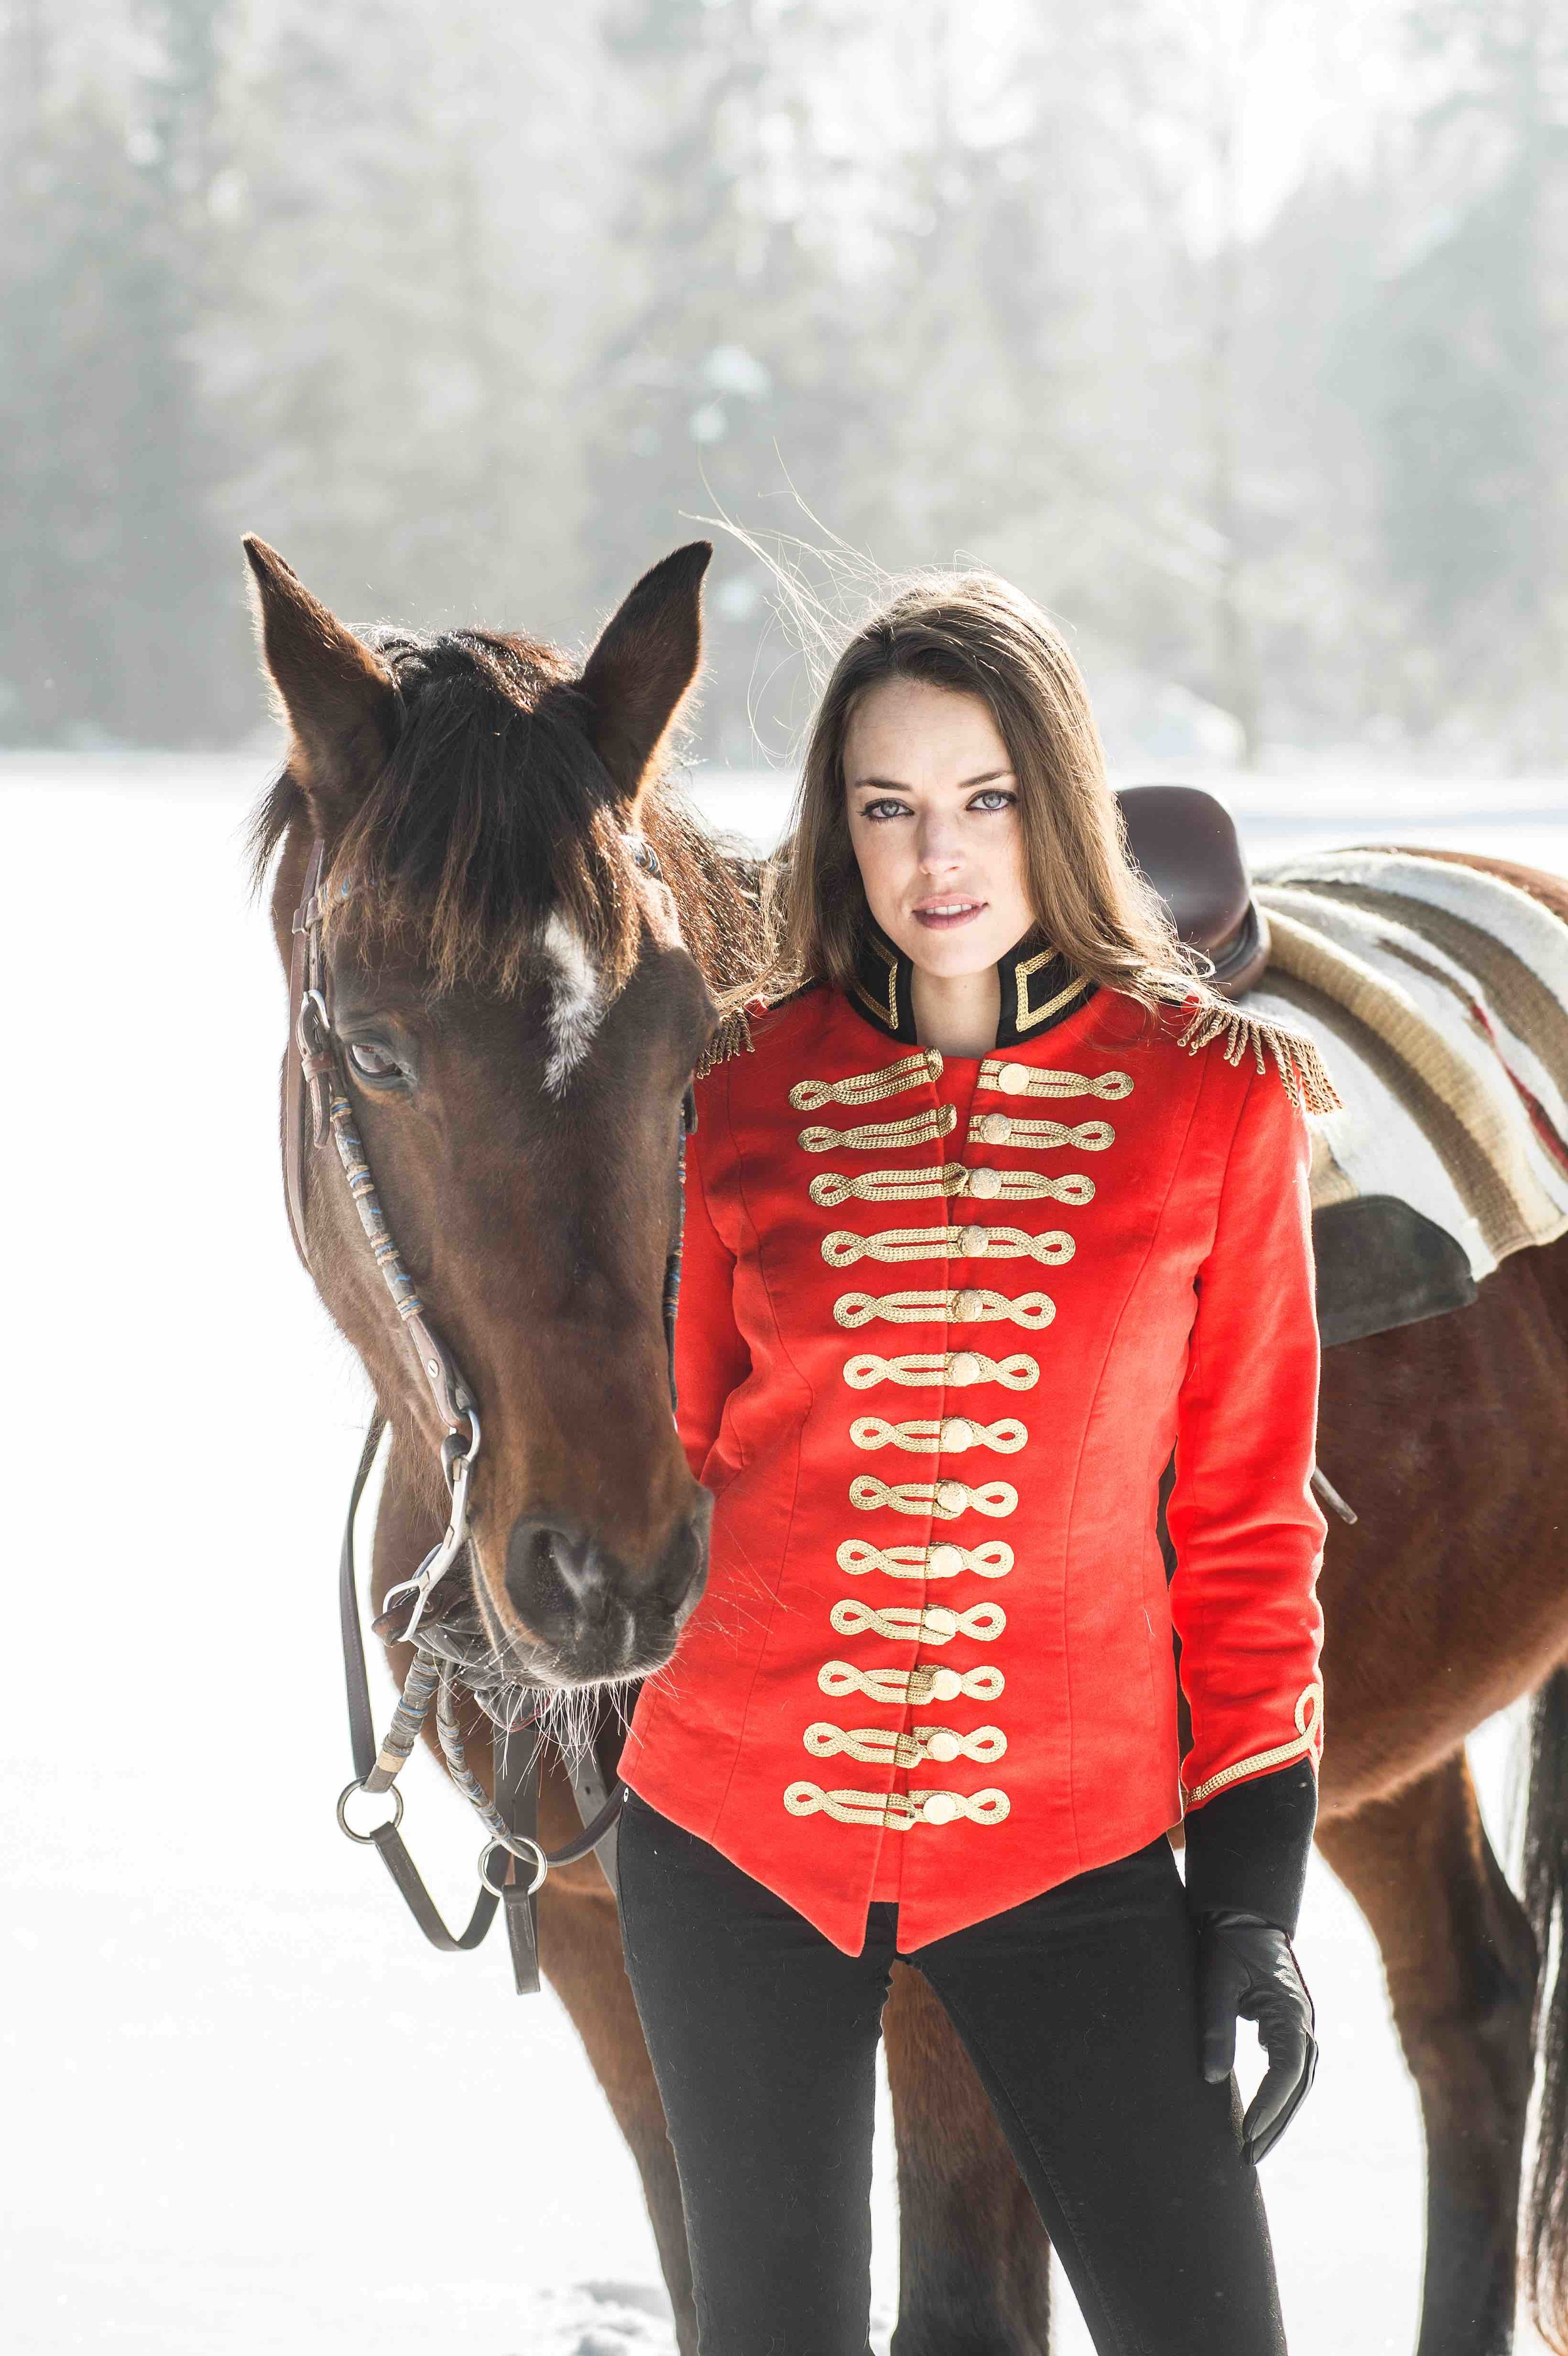 low res Isabel horse standing red jacket no hat copy.jpg